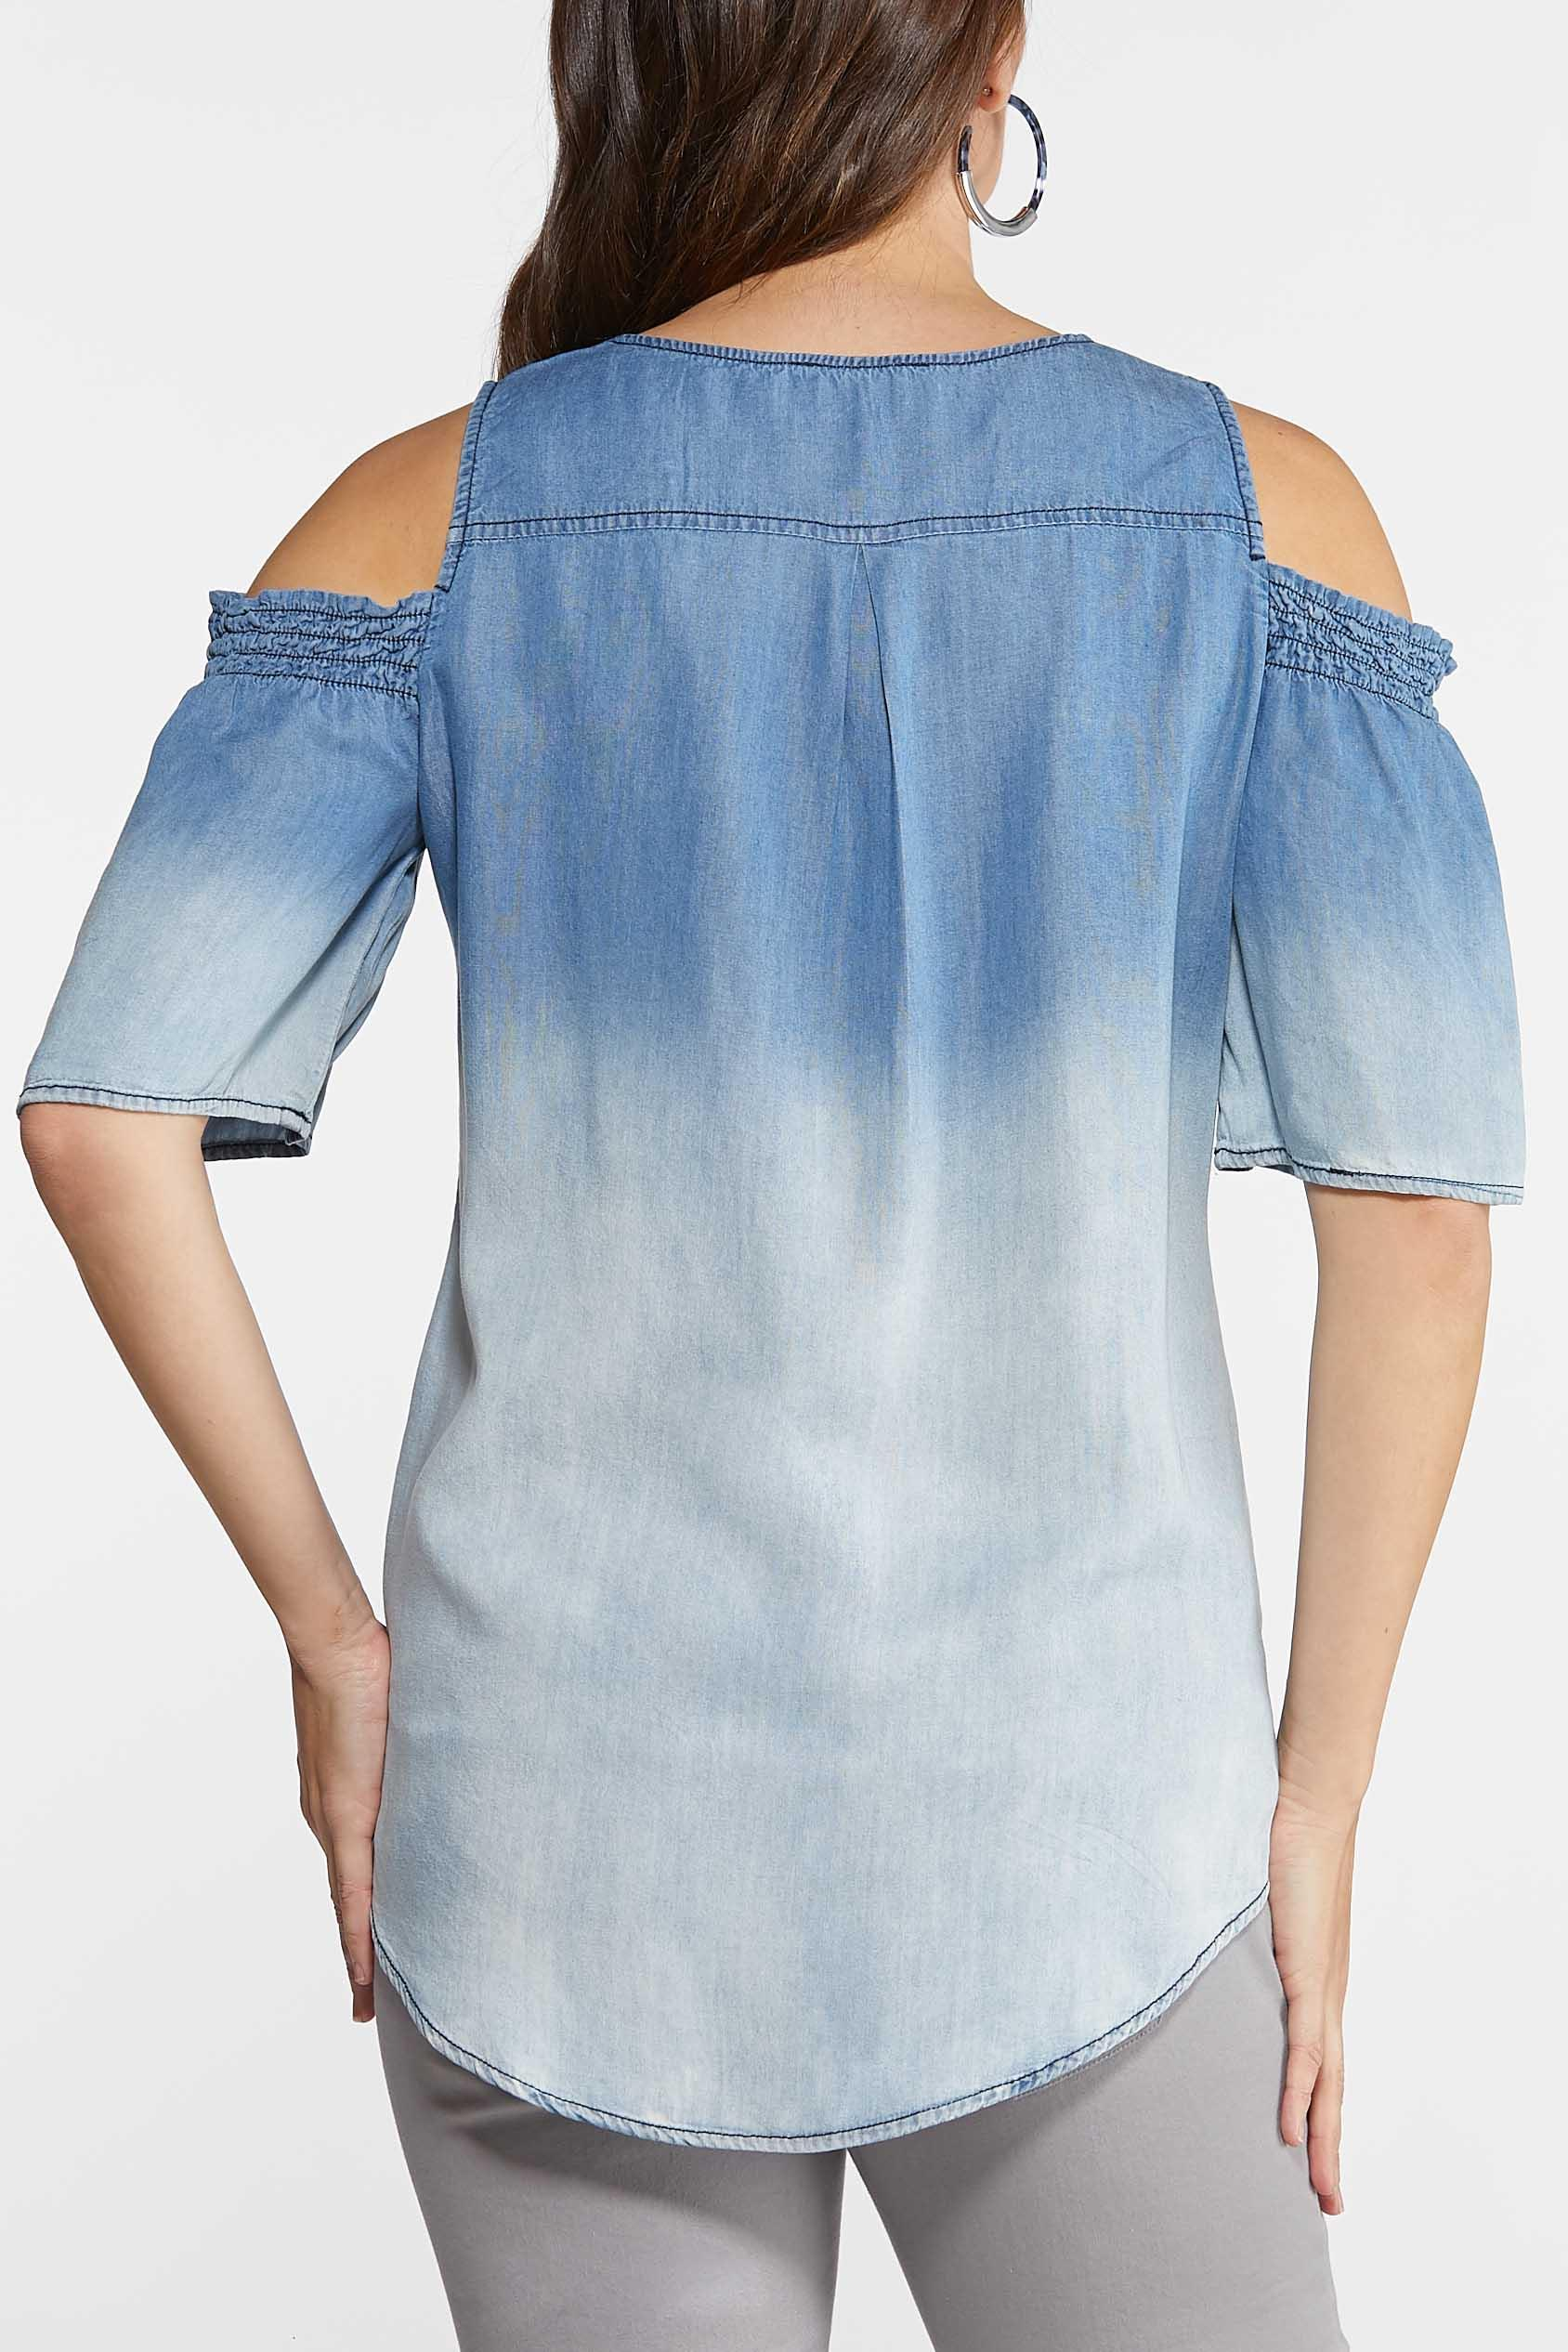 Plus Size Chambray Cold Shoulder Top (Item #43844545)